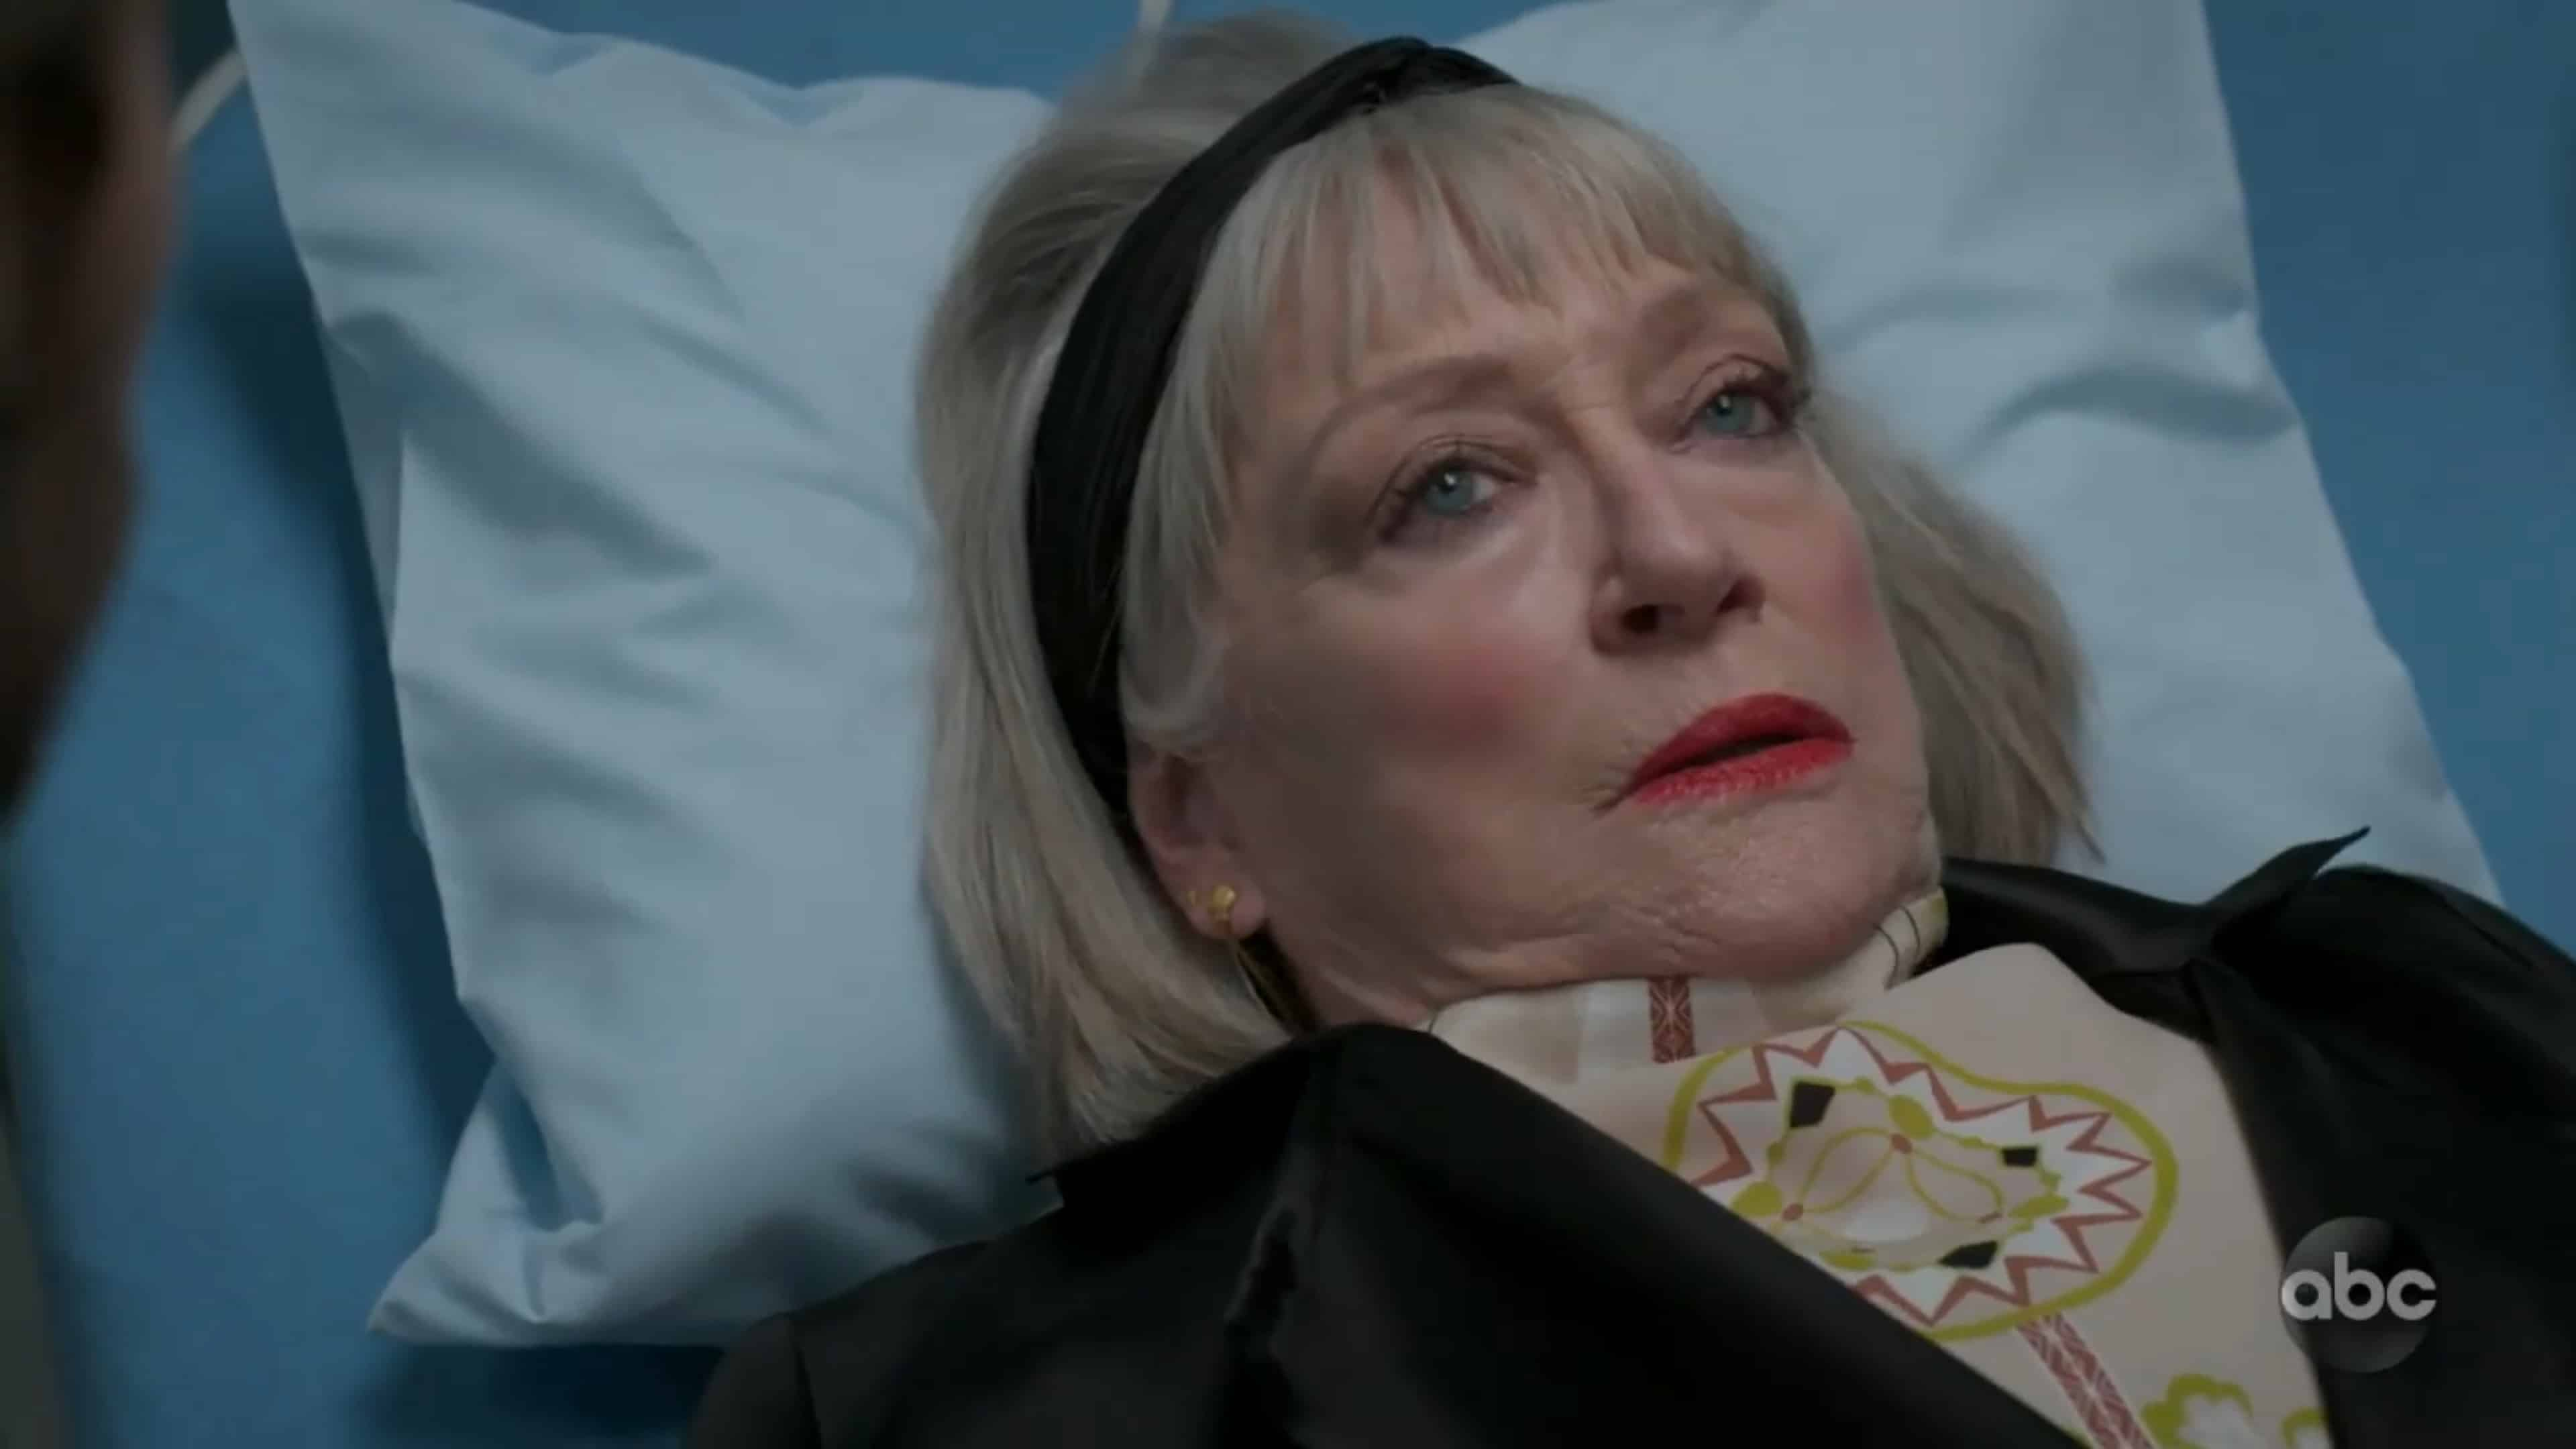 Maxine (Veronica Cartweight) realizing she is still alive